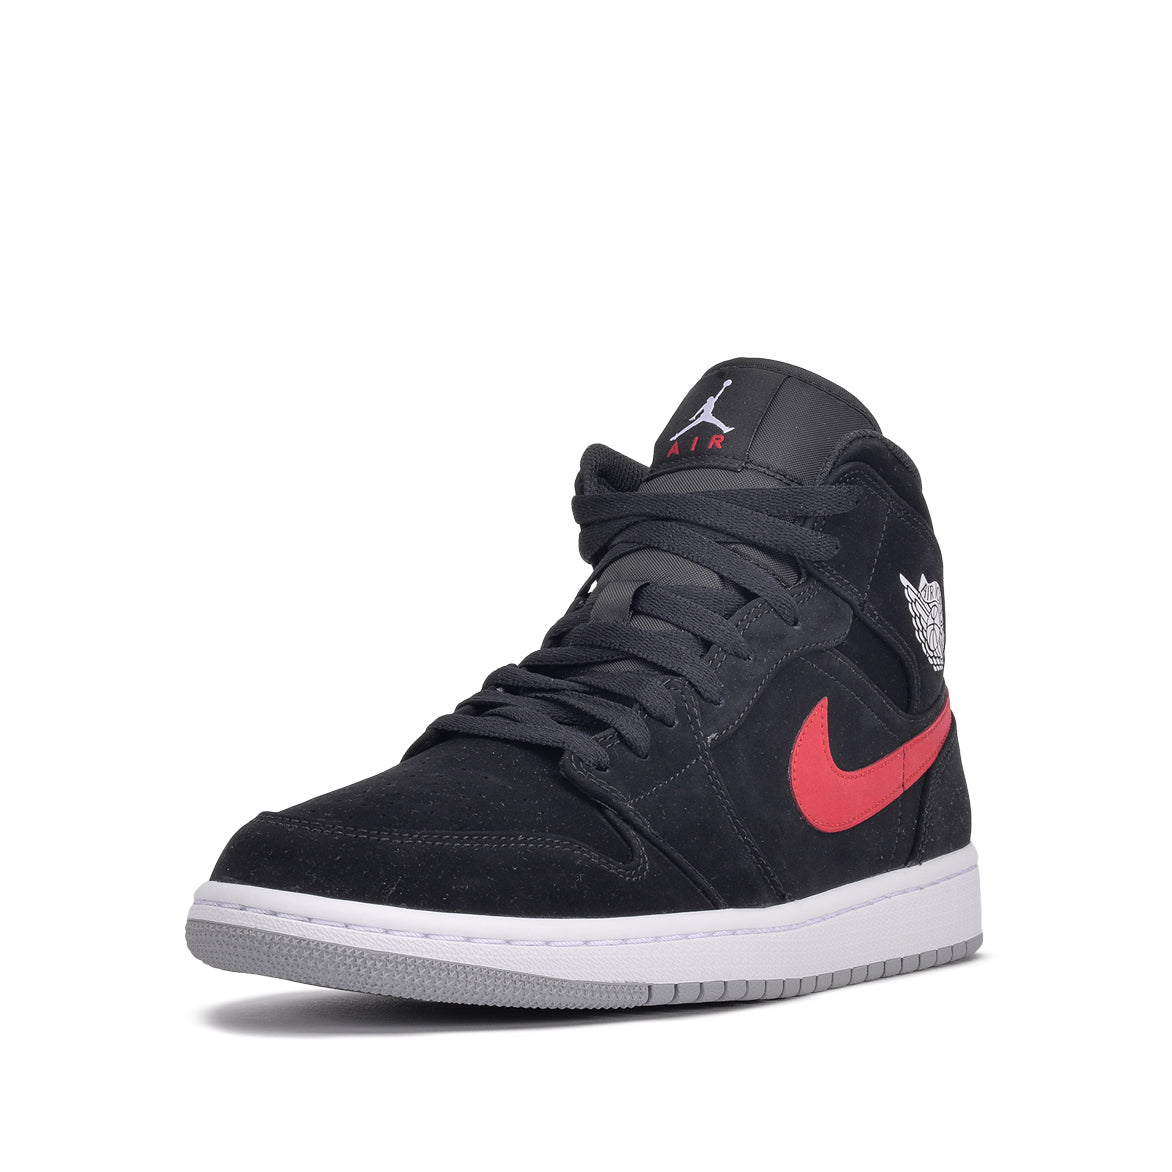 promo code 3b2a1 09c5f ... AIR JORDAN 1 MID - BLACK   UNIVERSITY RED ...